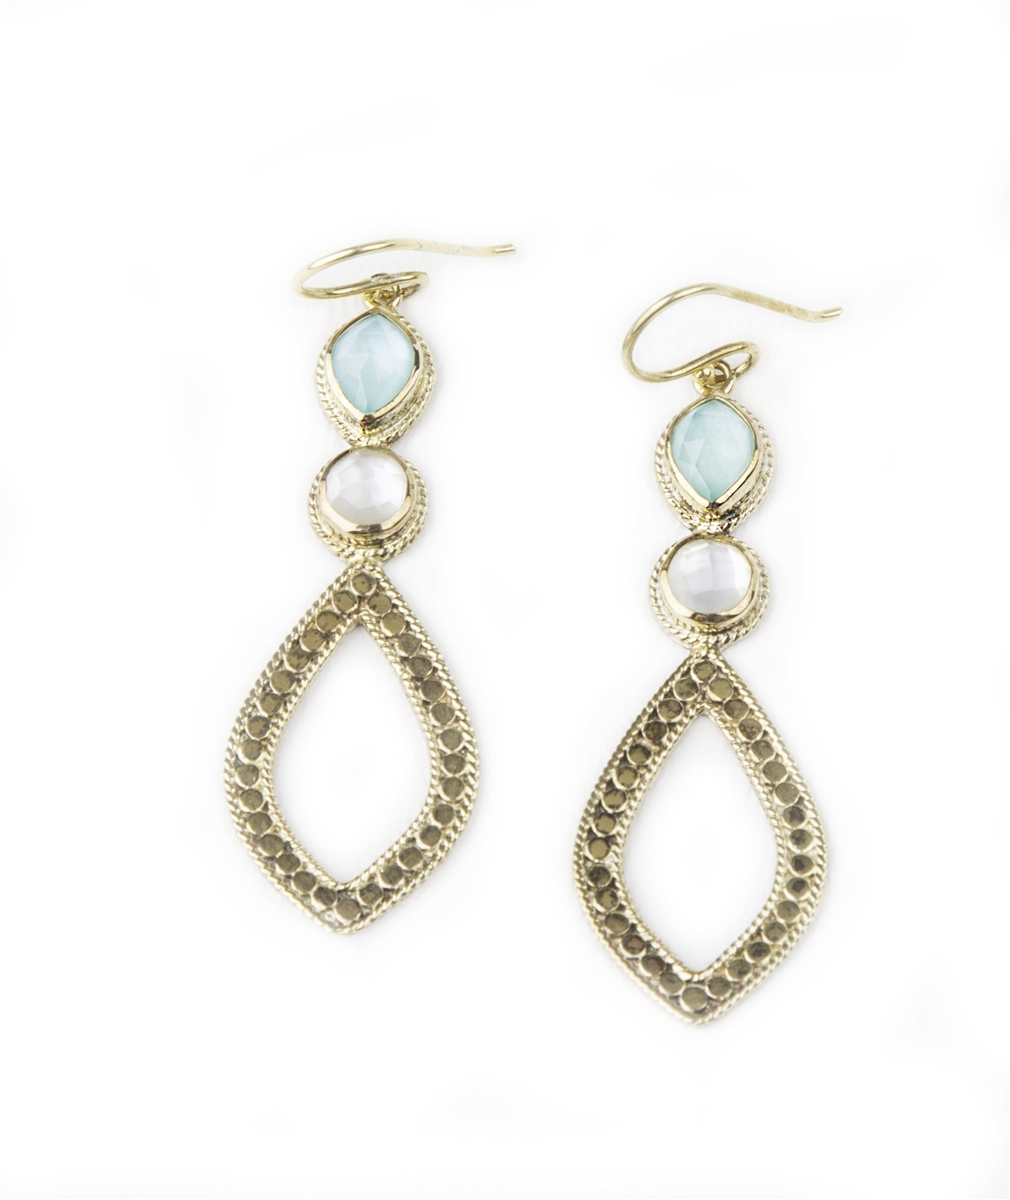 91f5bd25fe62a Turquoise & Mother of Pearl Drop Earring by Anna Beck in Gold Plated ...